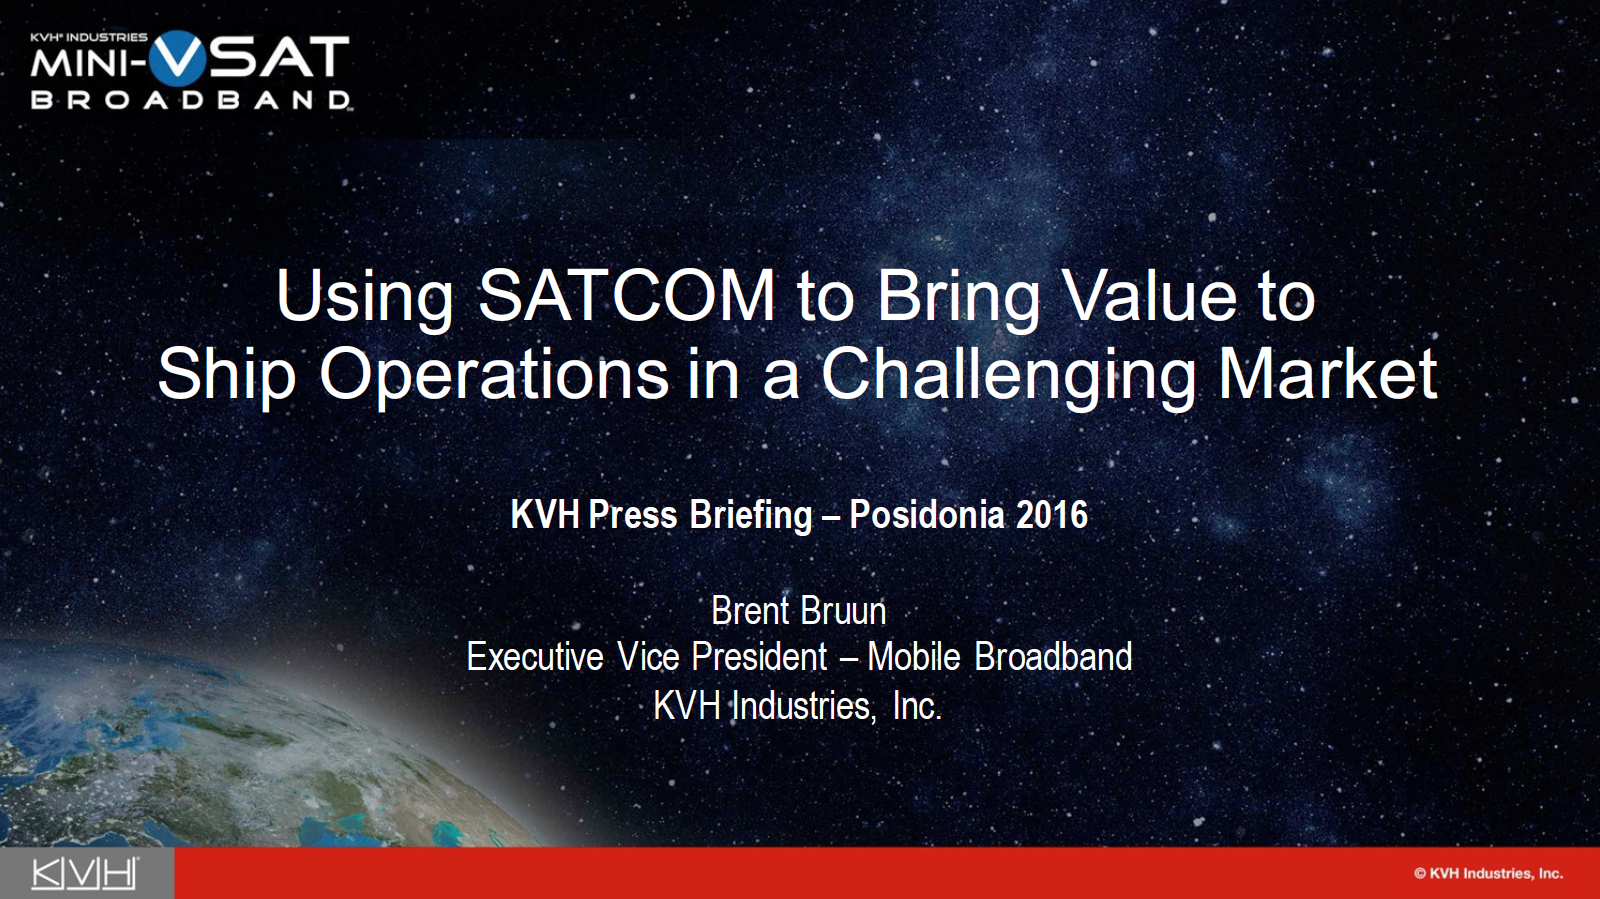 Using SATCOM to Bring Value to Ship Operations